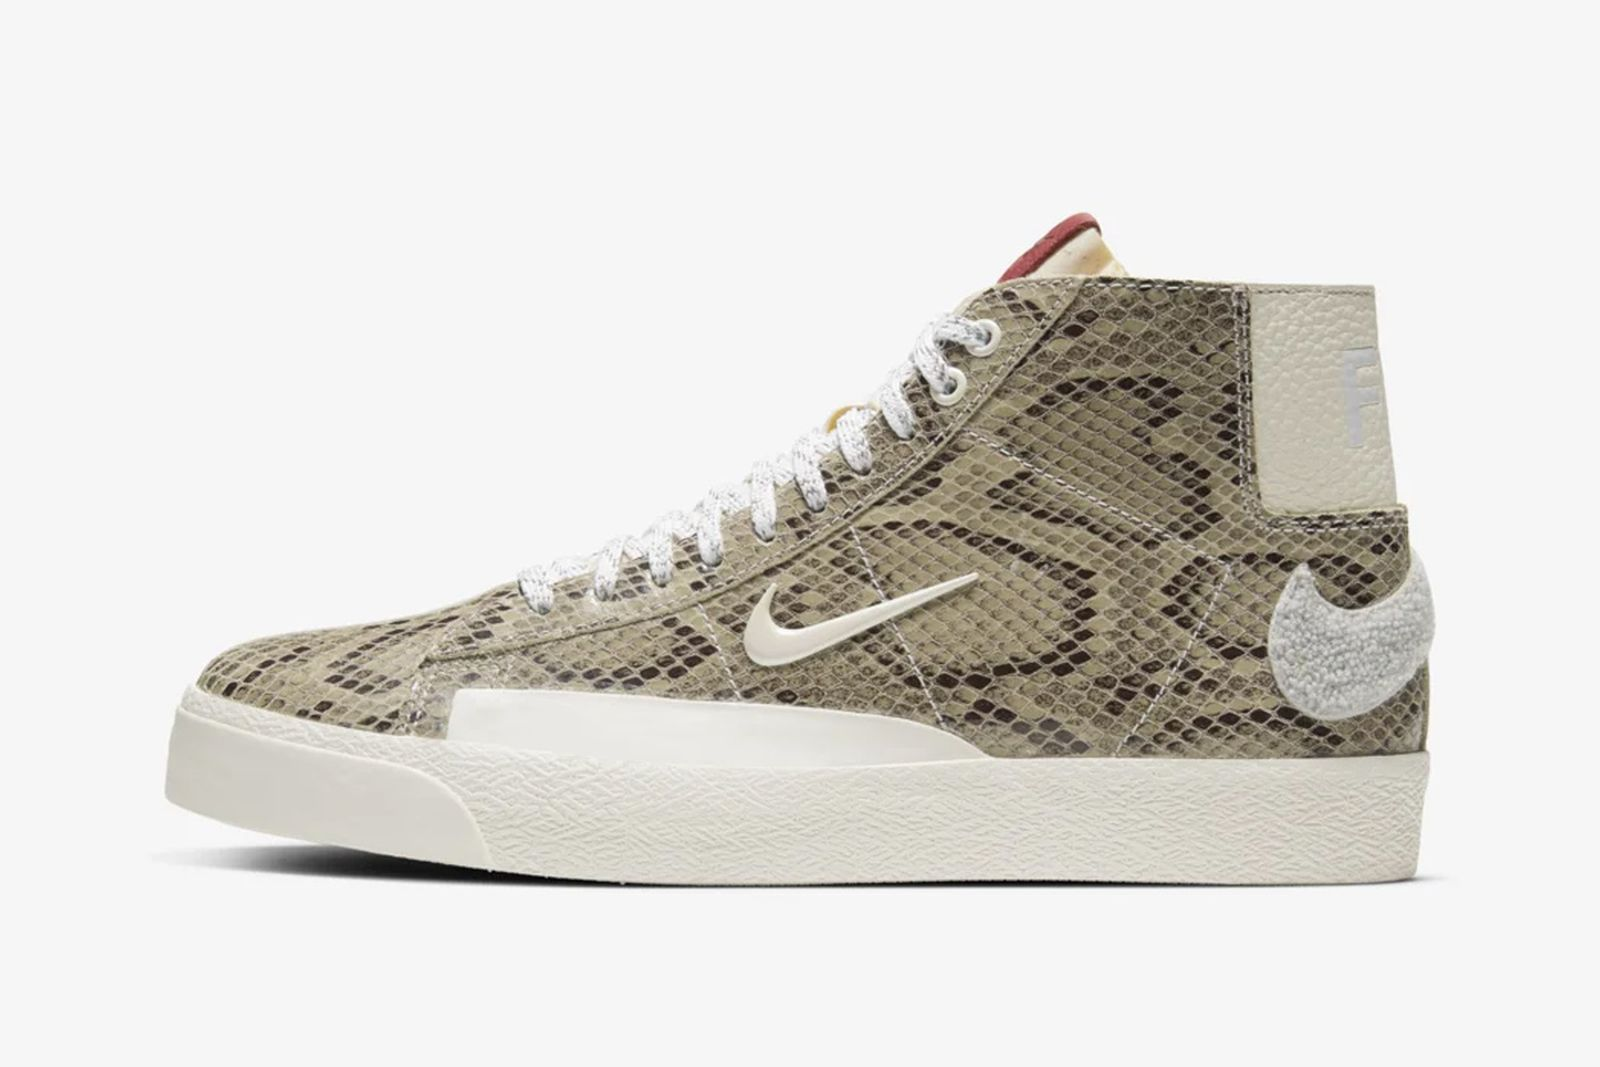 soulland-nike-blazer-mid-release-date-price-product-02